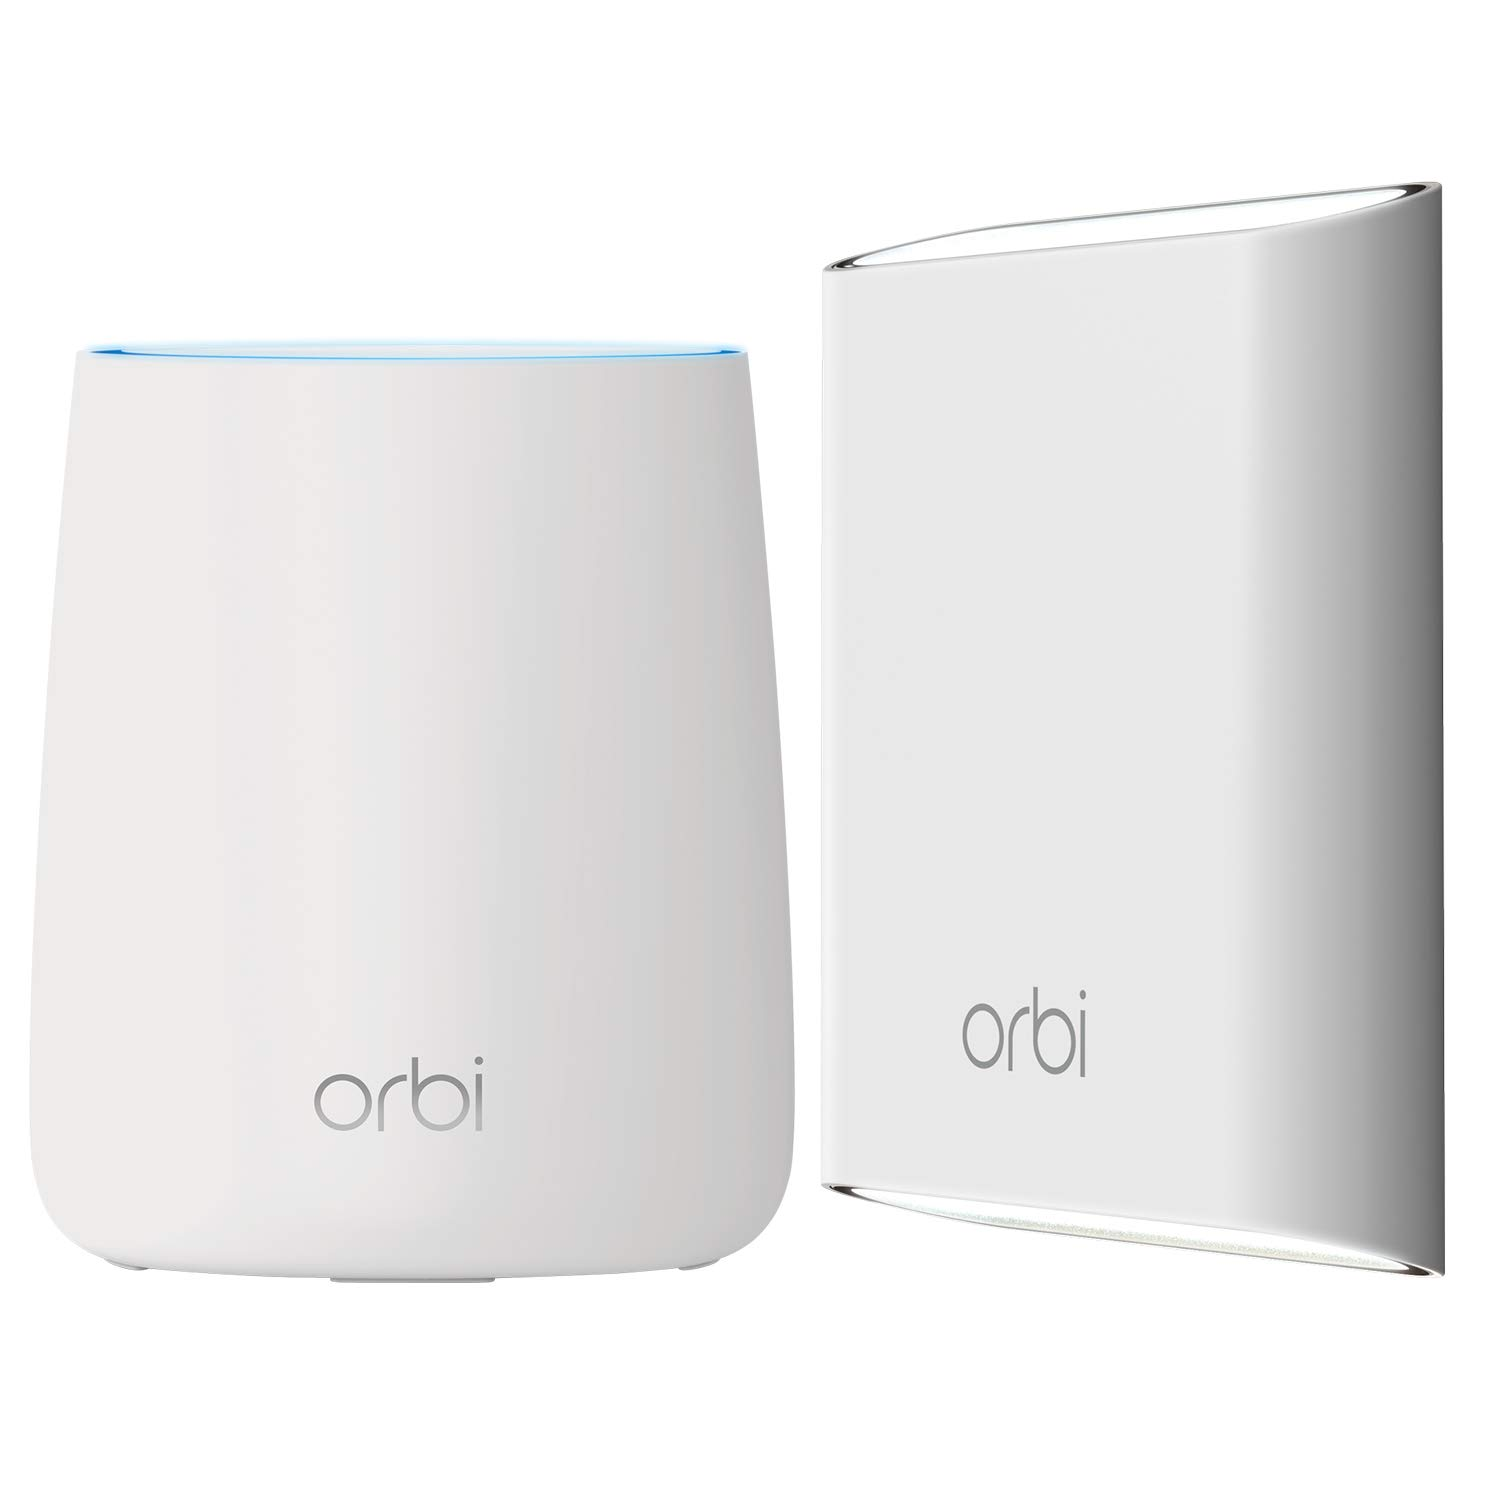 NETGEAR Orbi Home and Outdoor WiFi System. Up to 4,500 sq ft of WiFi coverage indoors and outdoors (RBR20 + RBS50Y) by